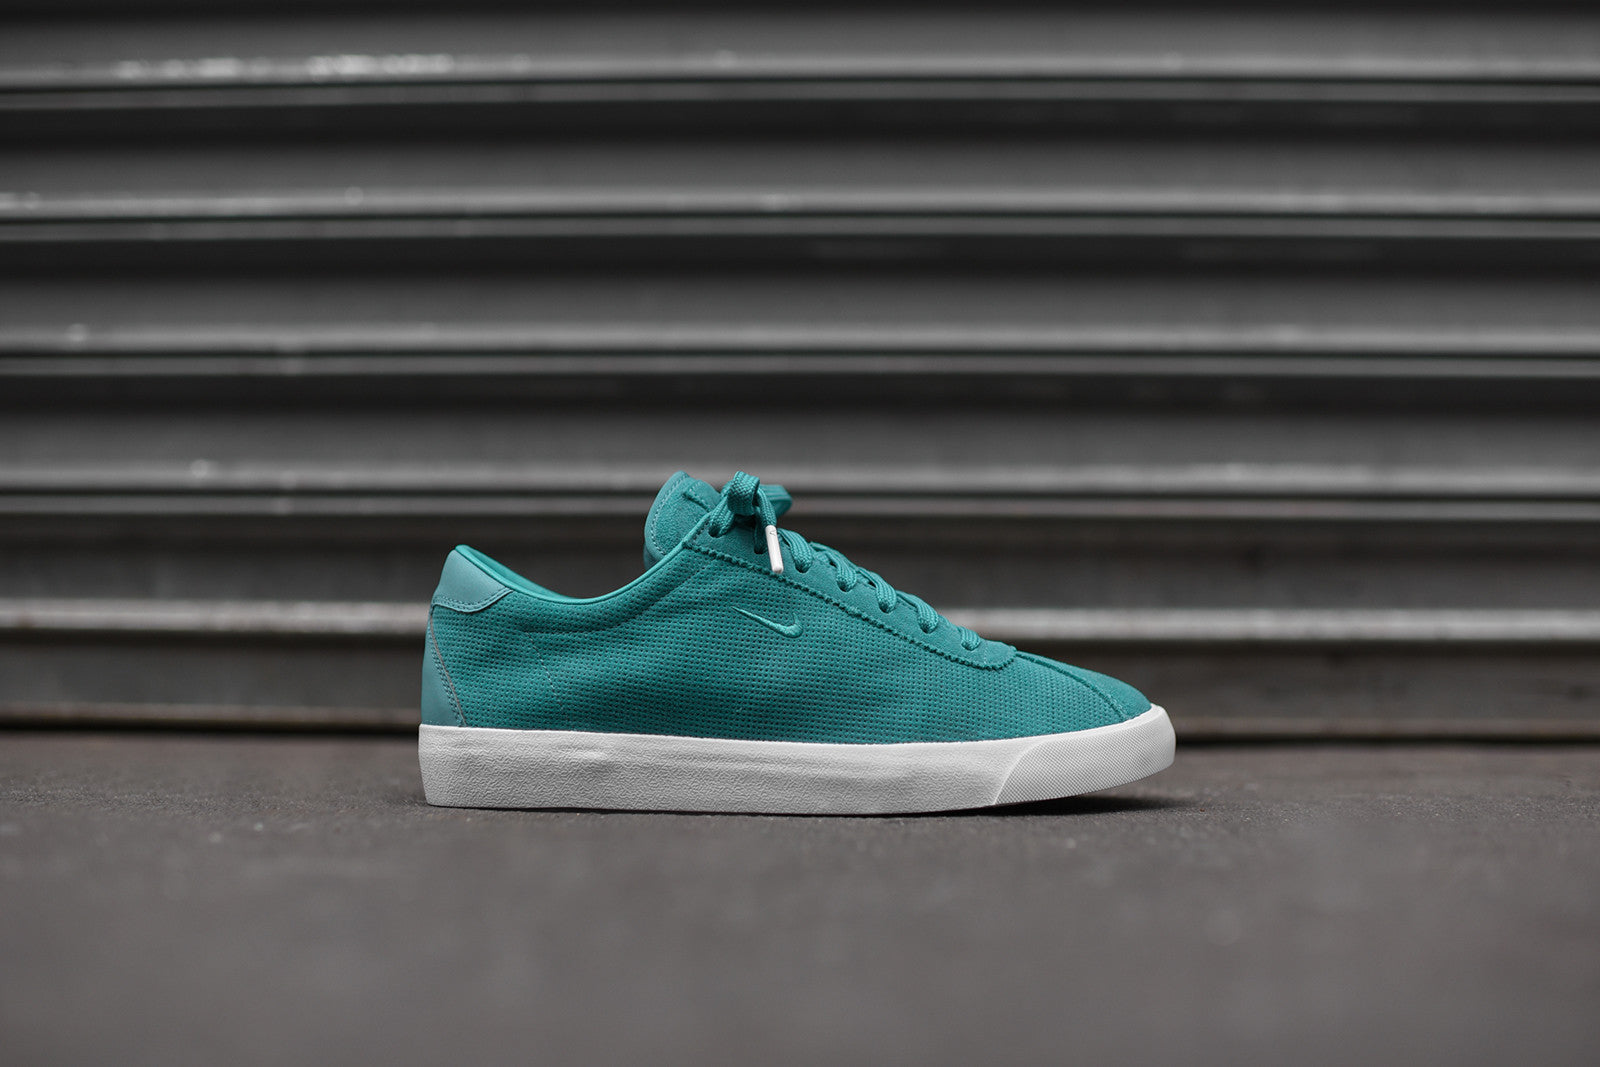 Nikelab match classic jade kith for Progressive house classics